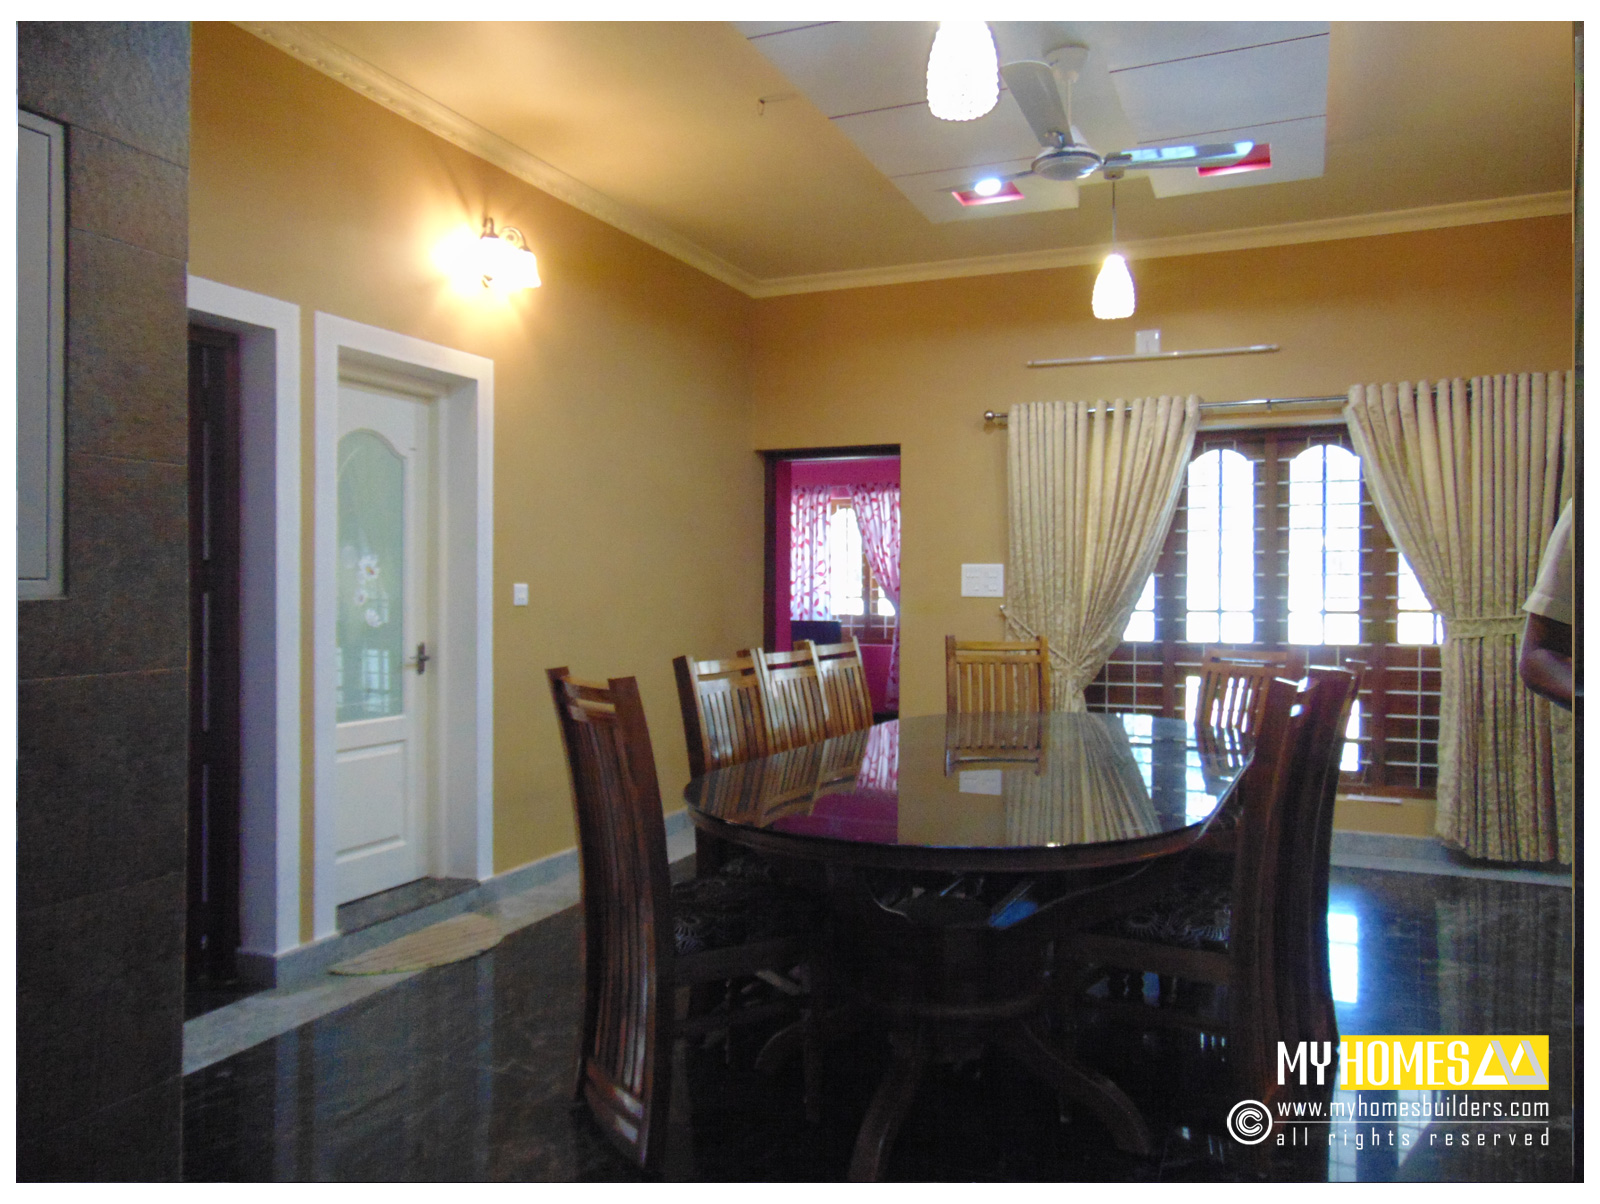 Dining Room Ideas Kerala Of Latest Ideas For Dining Room Design Kerala From My Homes